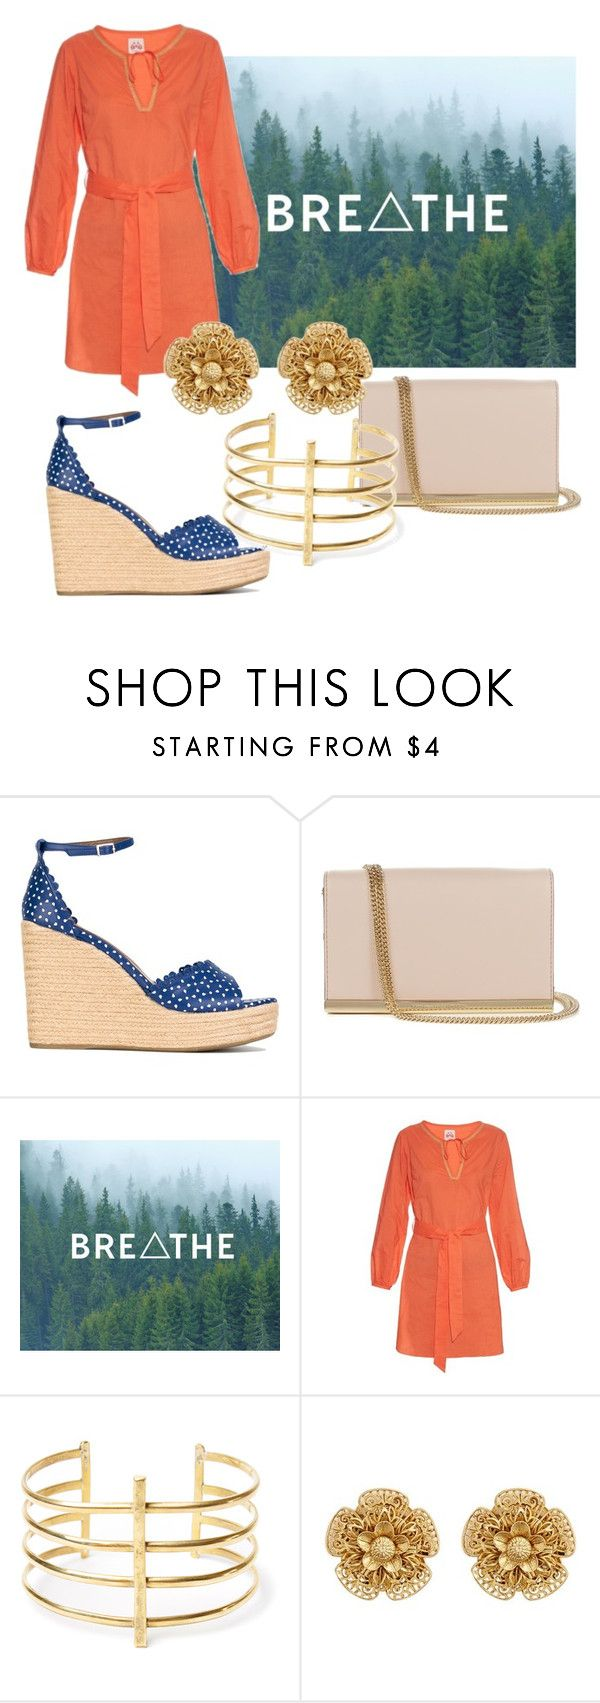 """""""👌🏻👌🏻👌🏻👌🏻👌🏻"""" by colleen-culp on Polyvore featuring Tabitha Simmons, Diane Von Furstenberg, Le Sirenuse, BauXo and Miriam Haskell"""